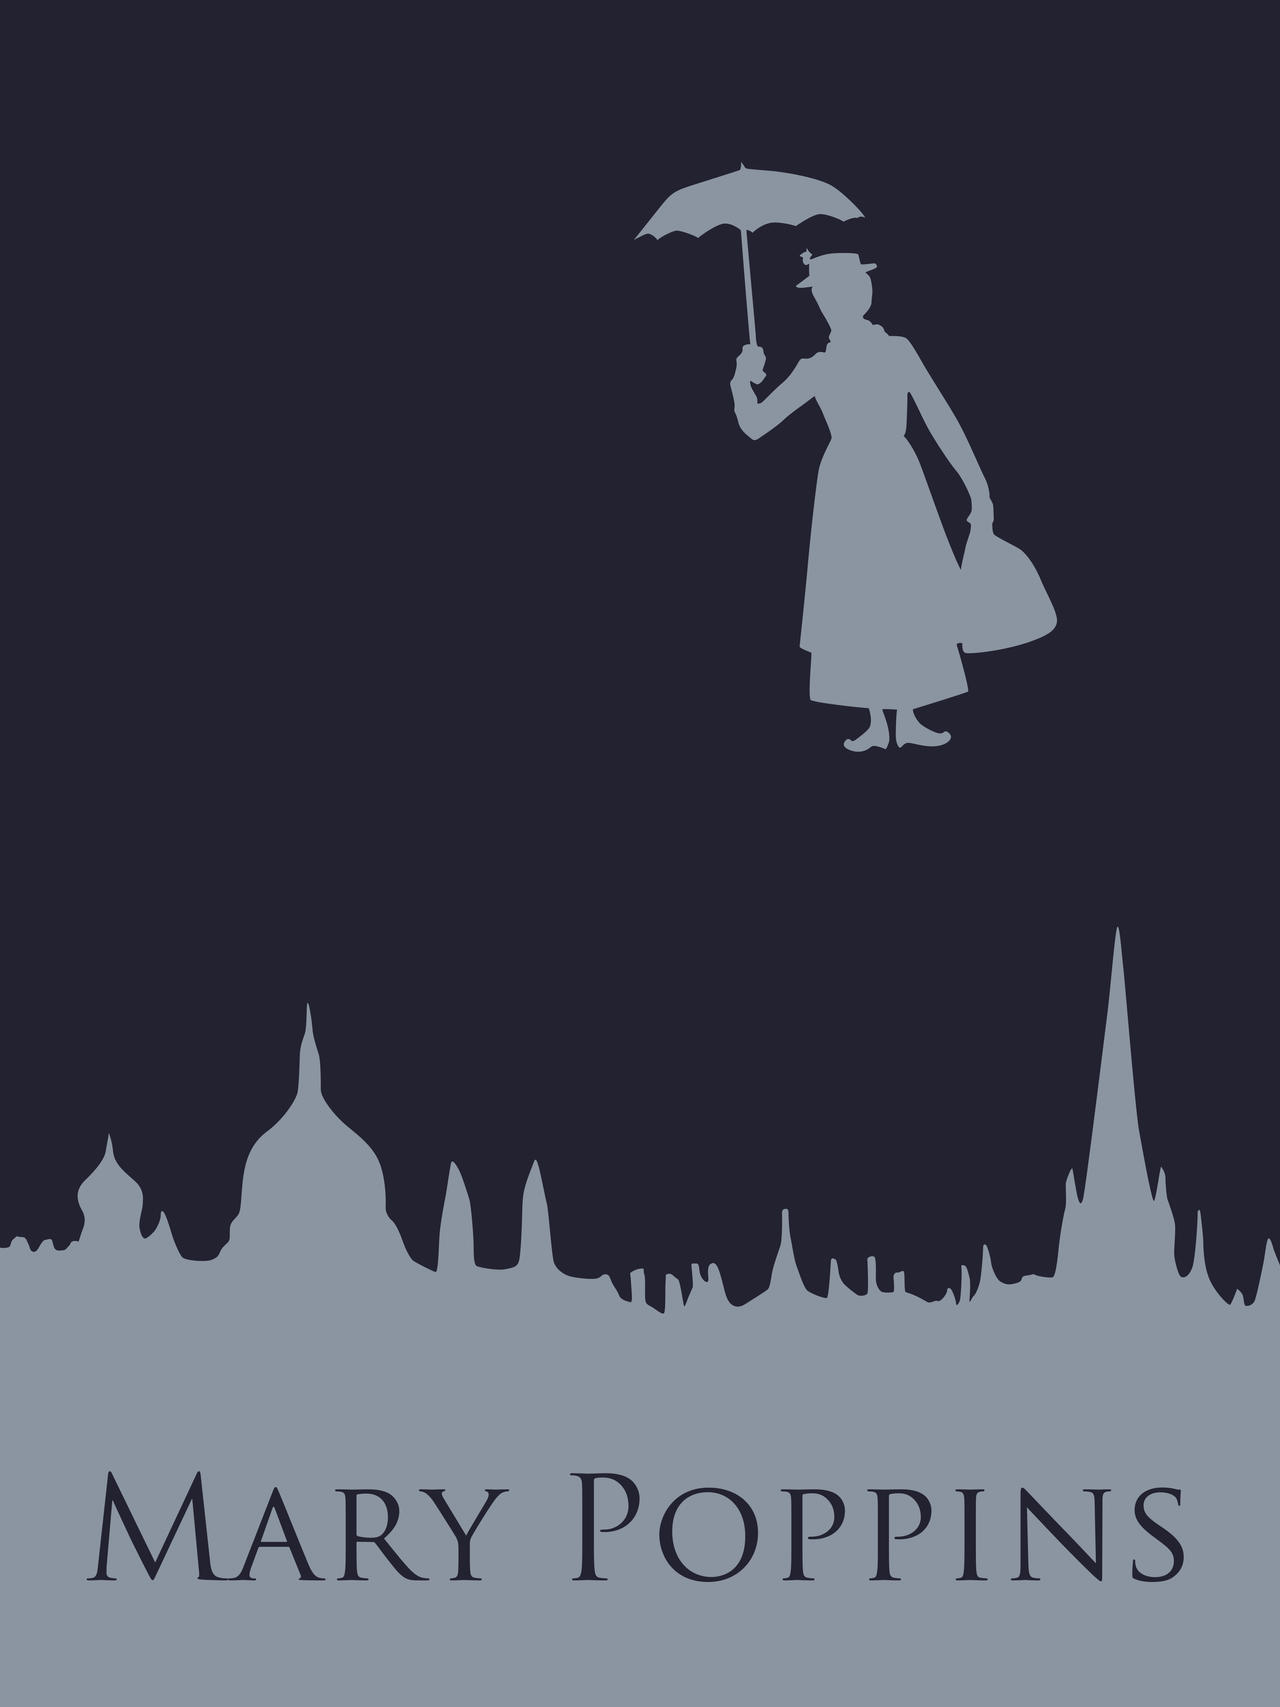 Mary poppins by citron vert on deviantart - Mary poppins wallpaper ...